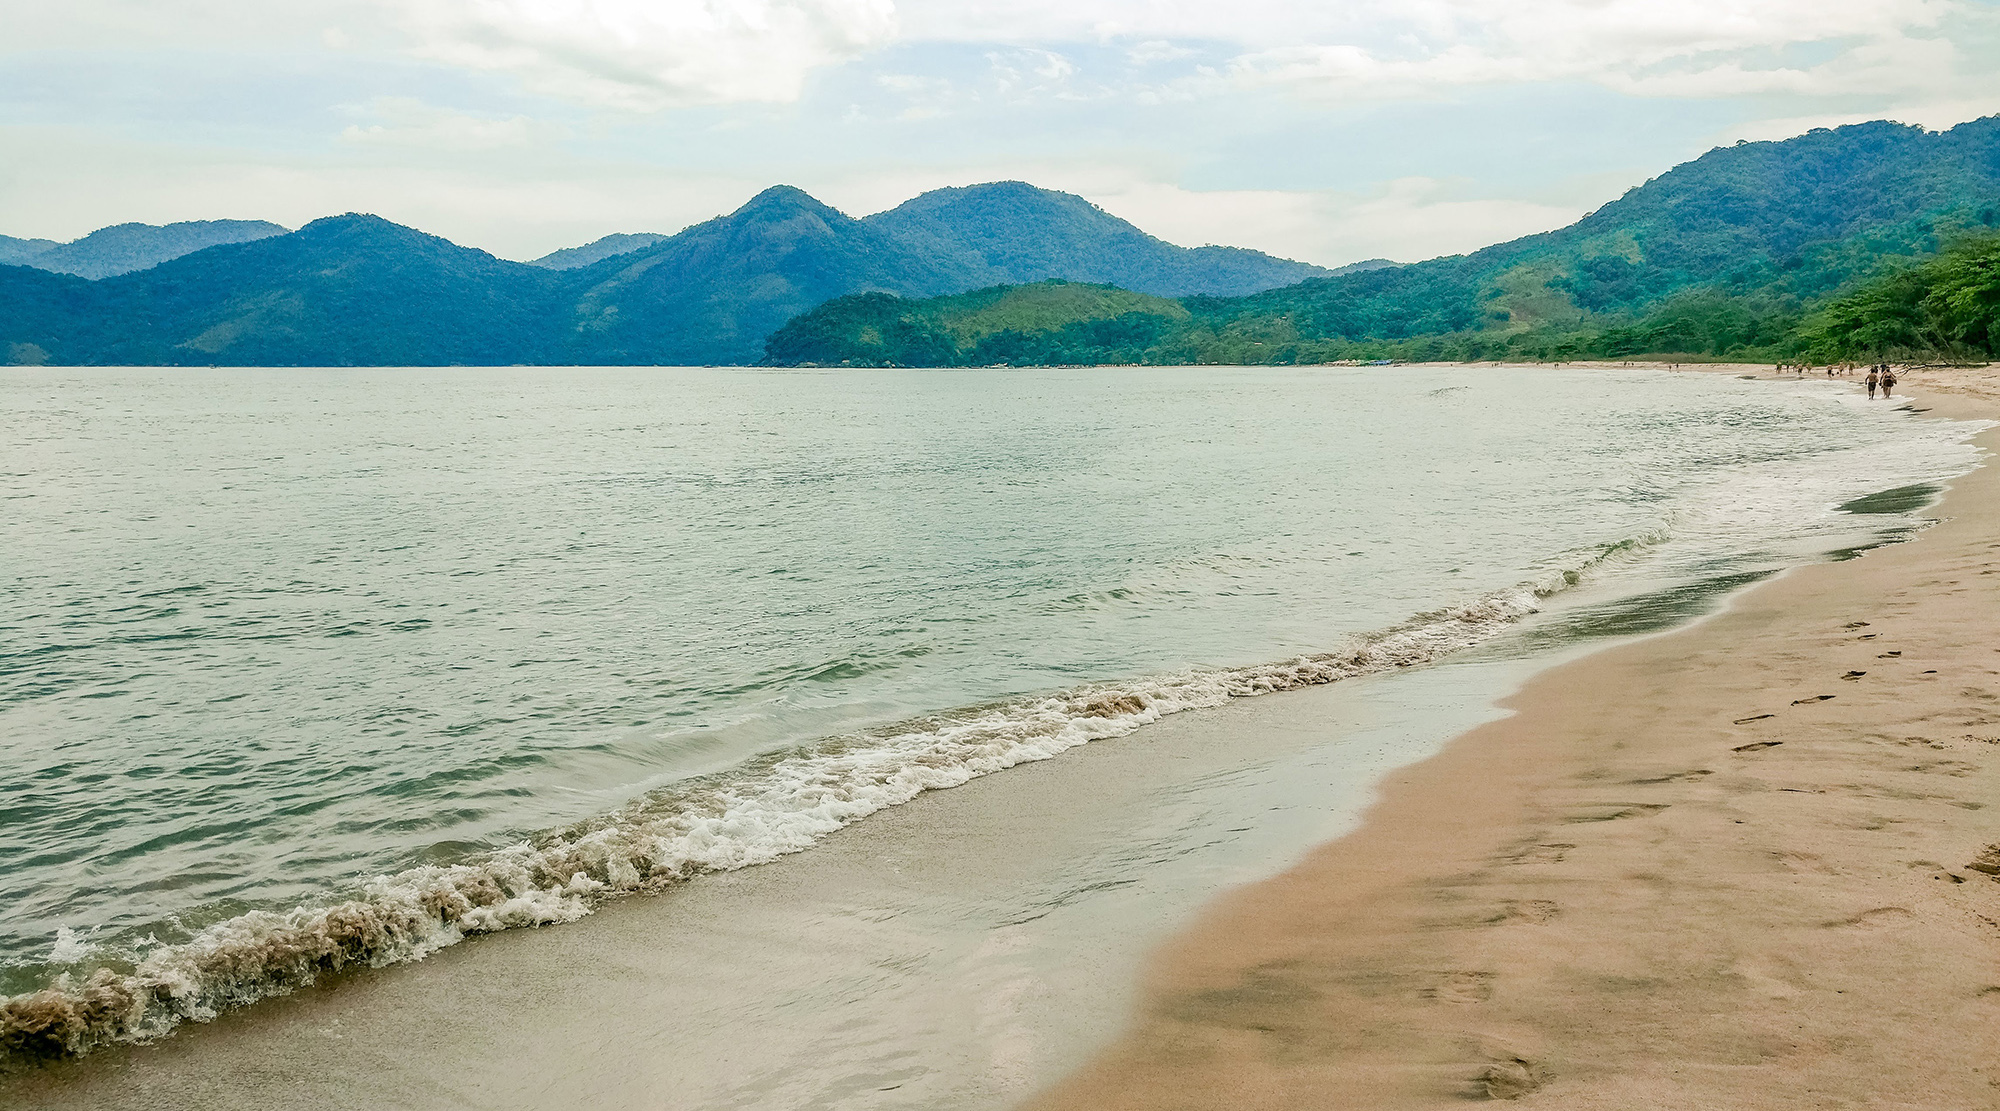 Beachtime at Praia Castelhanos - How to spend 3 days in Ilhabela, Brazil? | Aliz's Wonderland